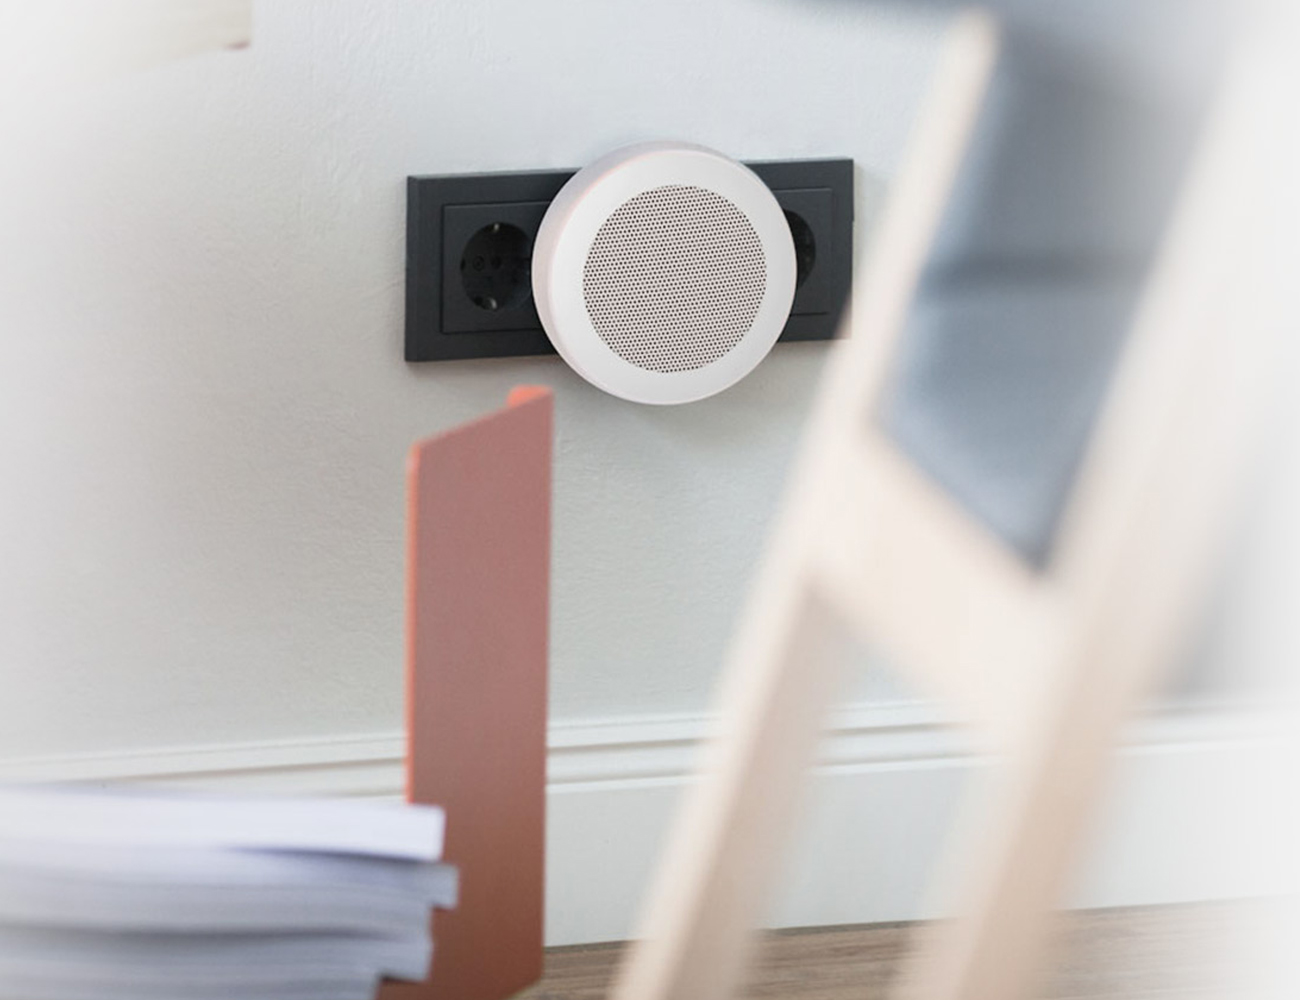 Beeb – The Smart Air Quality Monitor